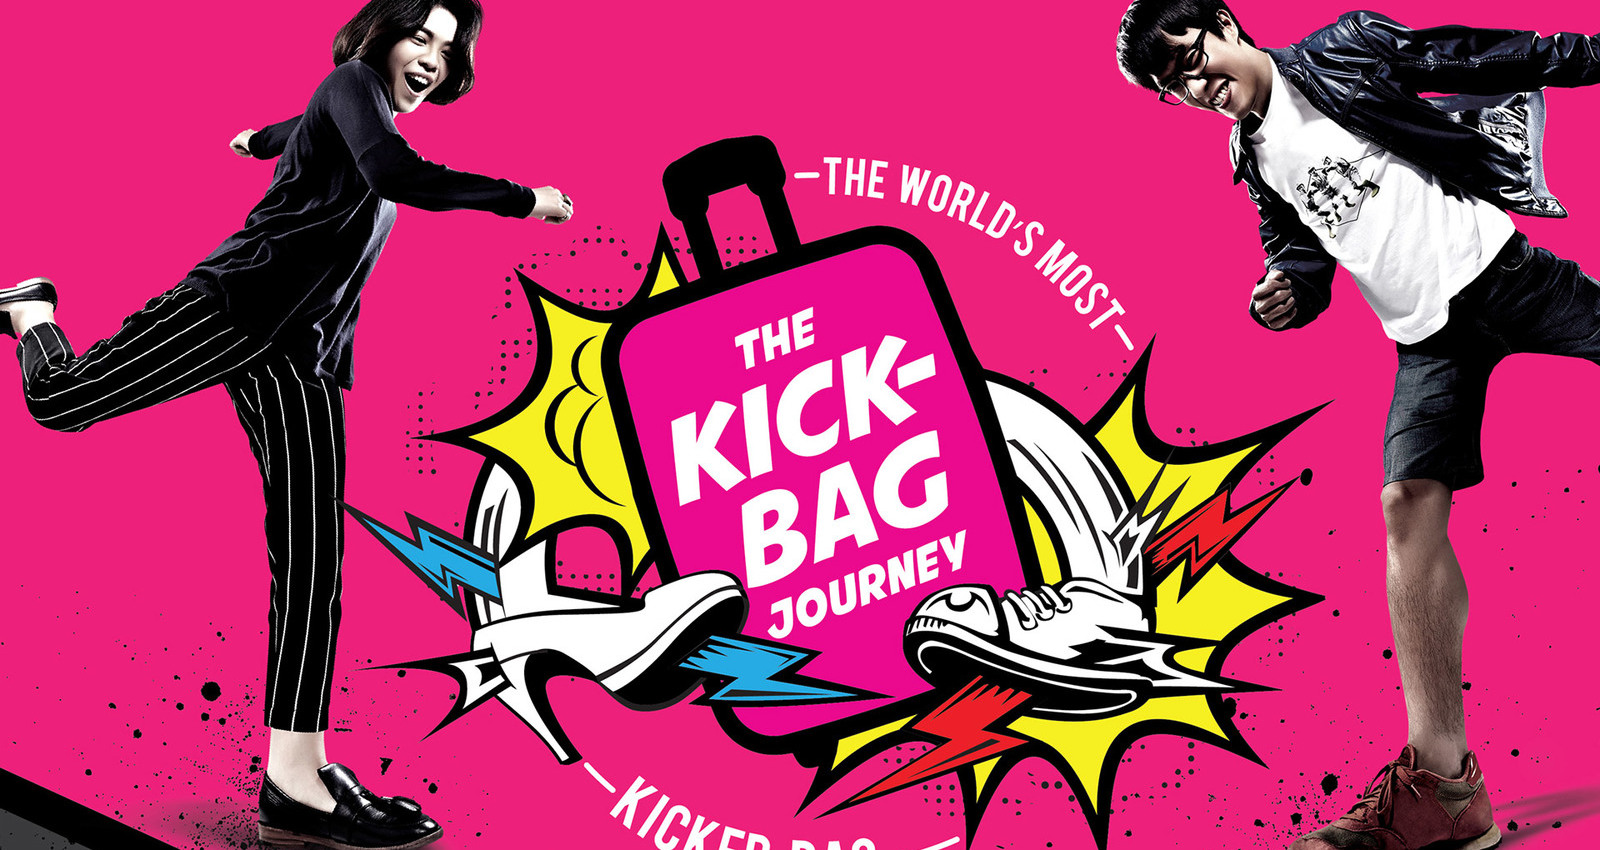 The Kick-Bag Journey